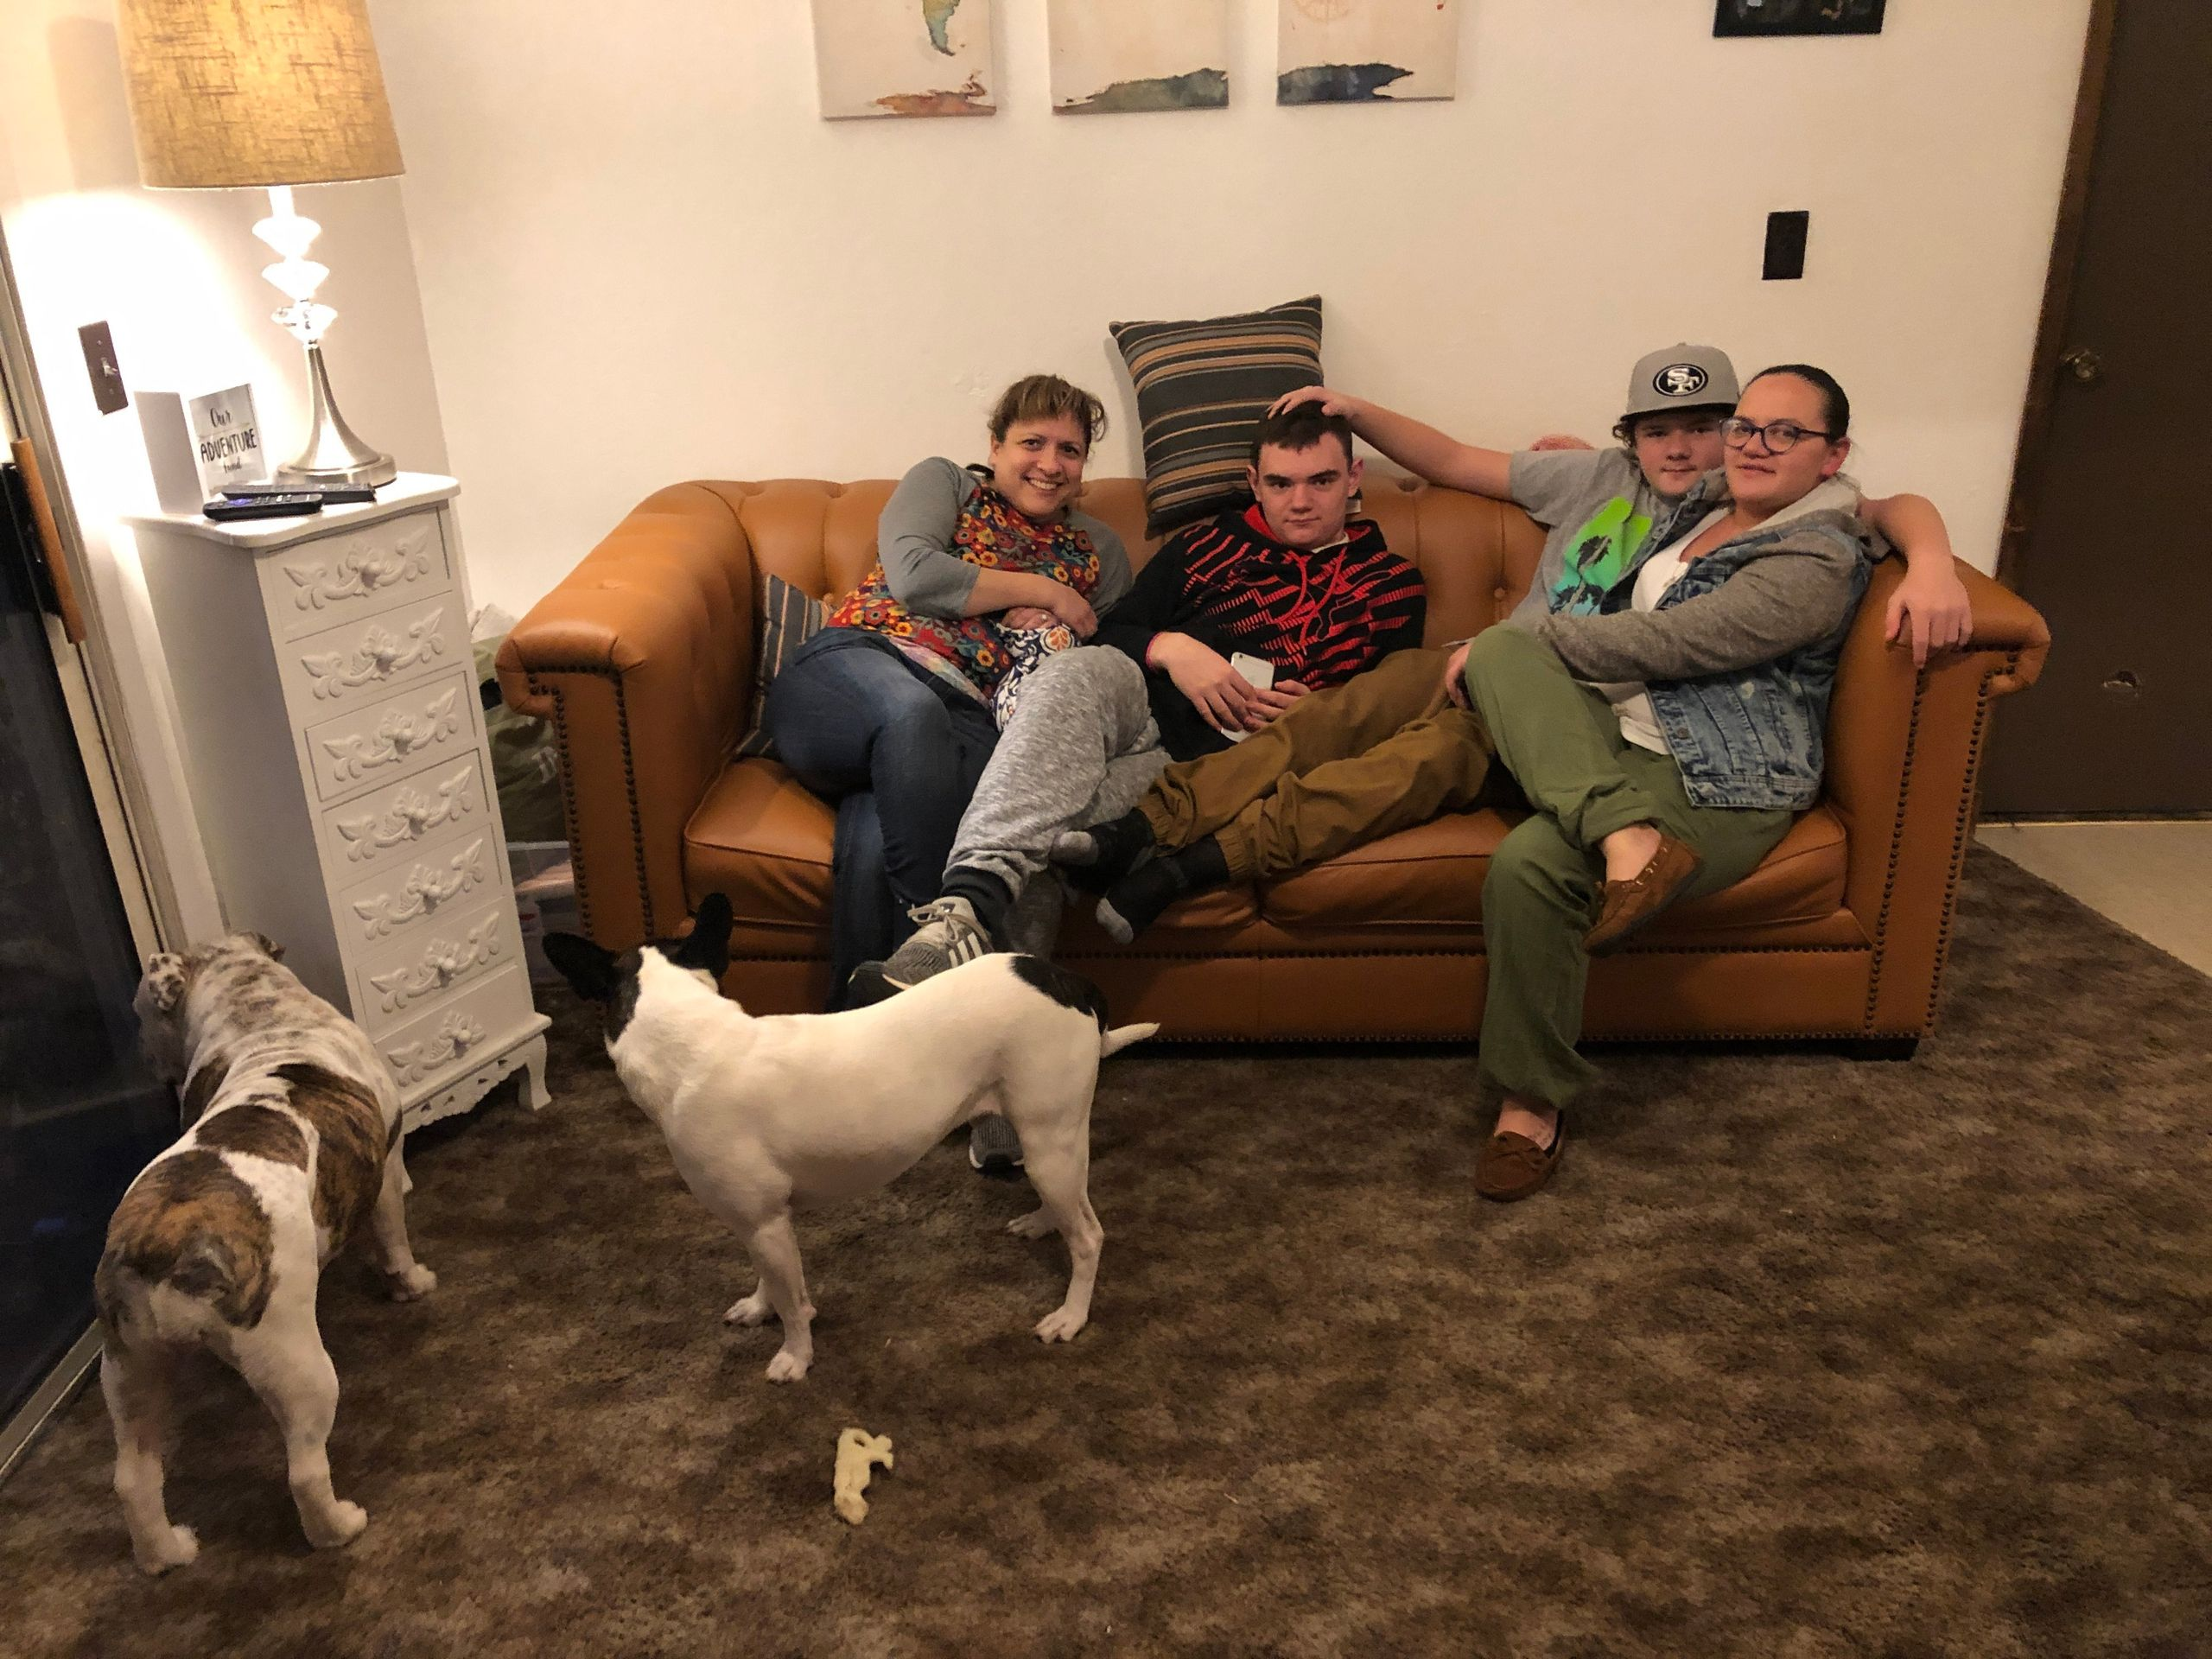 (From left) Stacy Hawley and Dexter, Braxton and Pamela Howell in the living room of their new rental, months after losing th